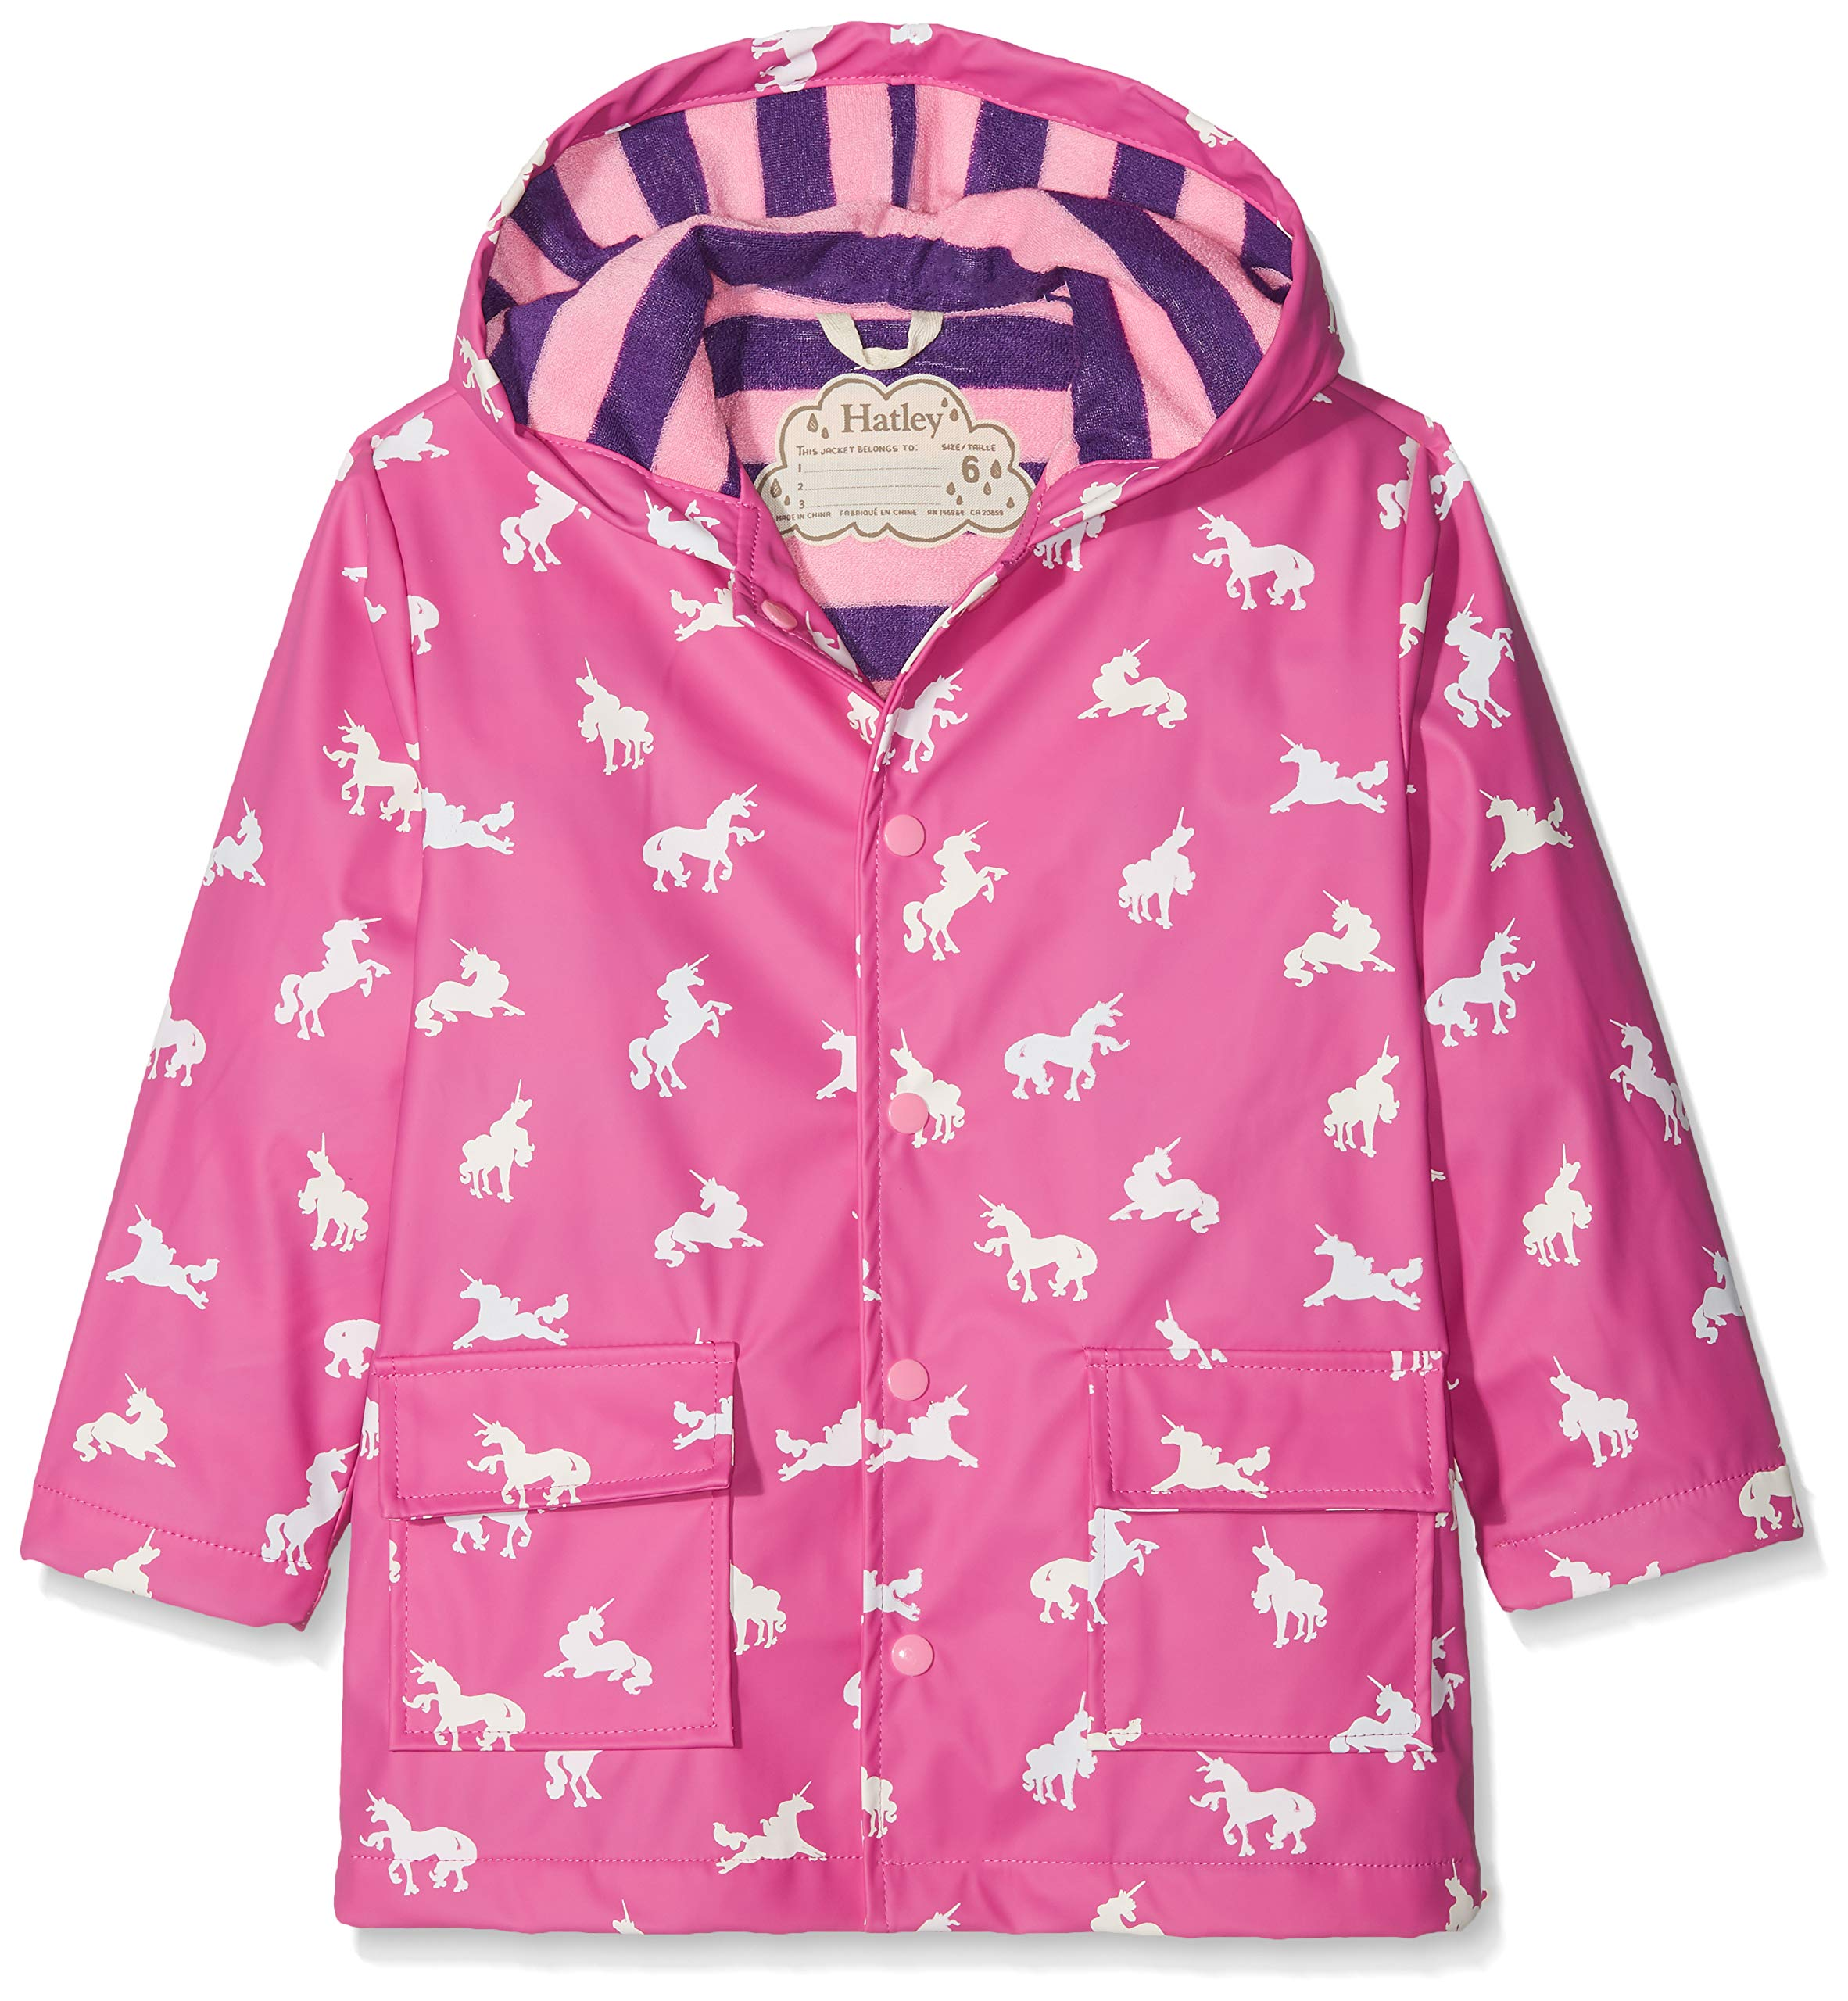 Hatley Girls' Printed Raincoats 3